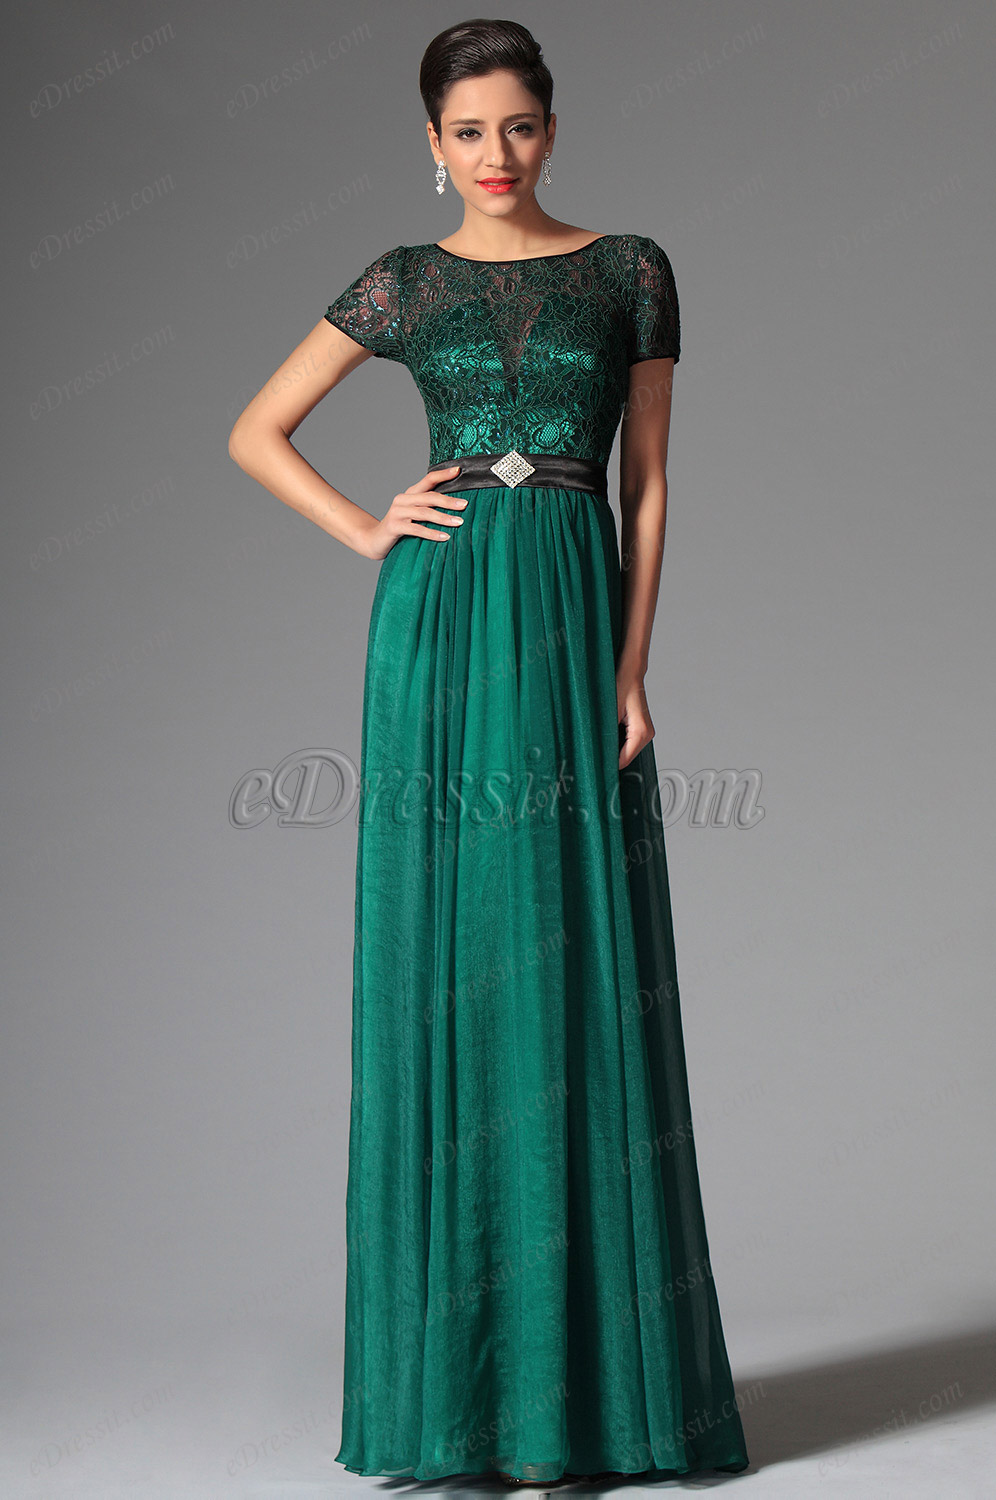 eDressit Dark Green Short Sleeves Evening Dress Prom Dress (02149605)